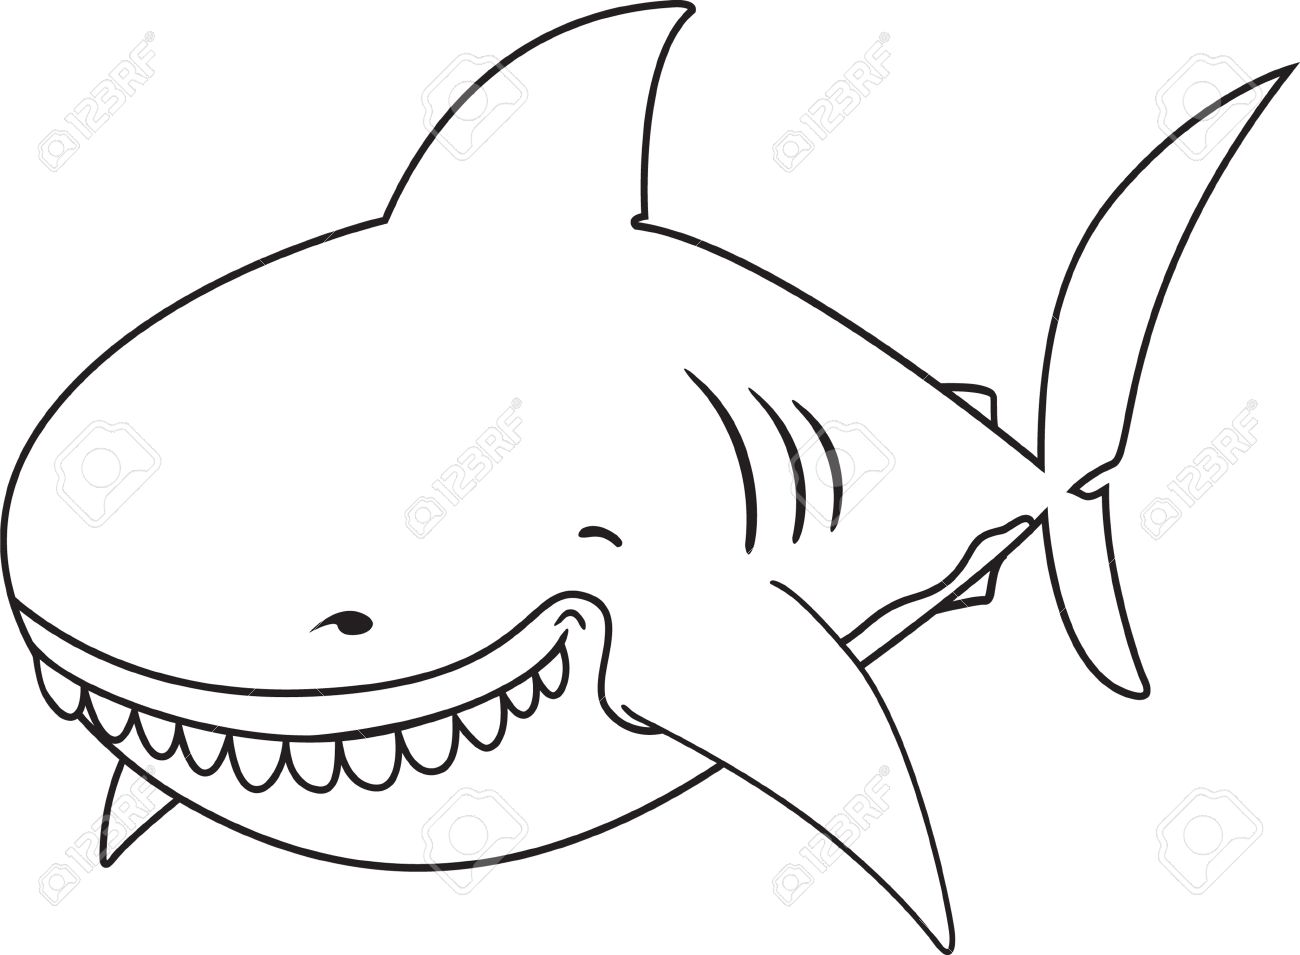 Cute Funny Looking Great White Shark Coloring Book Royalty Free ...